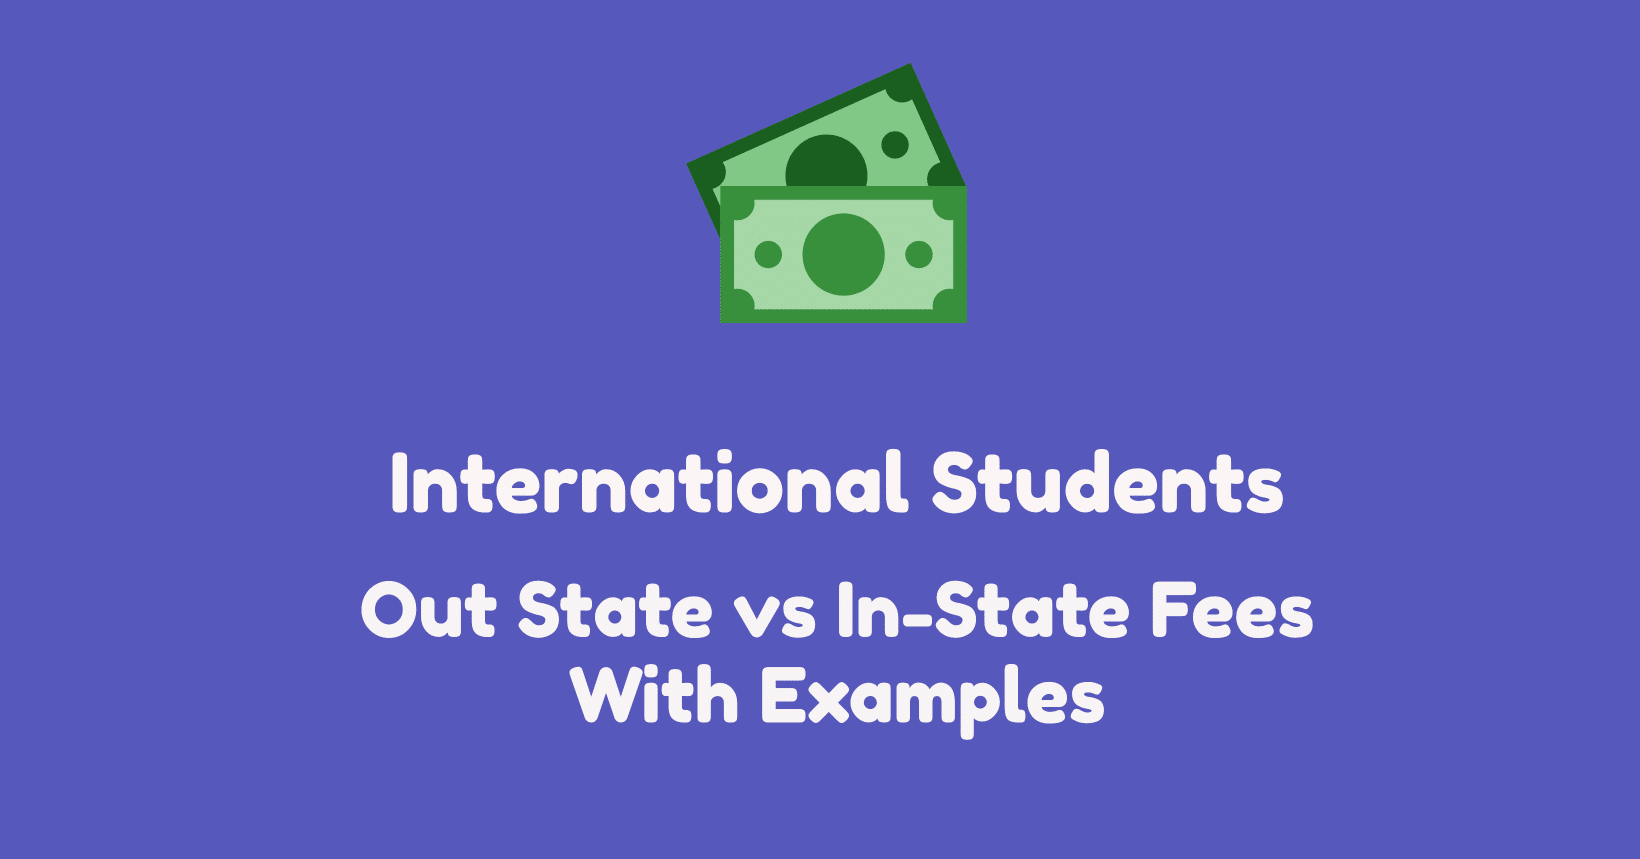 Out State vs In-State Fees With Examples